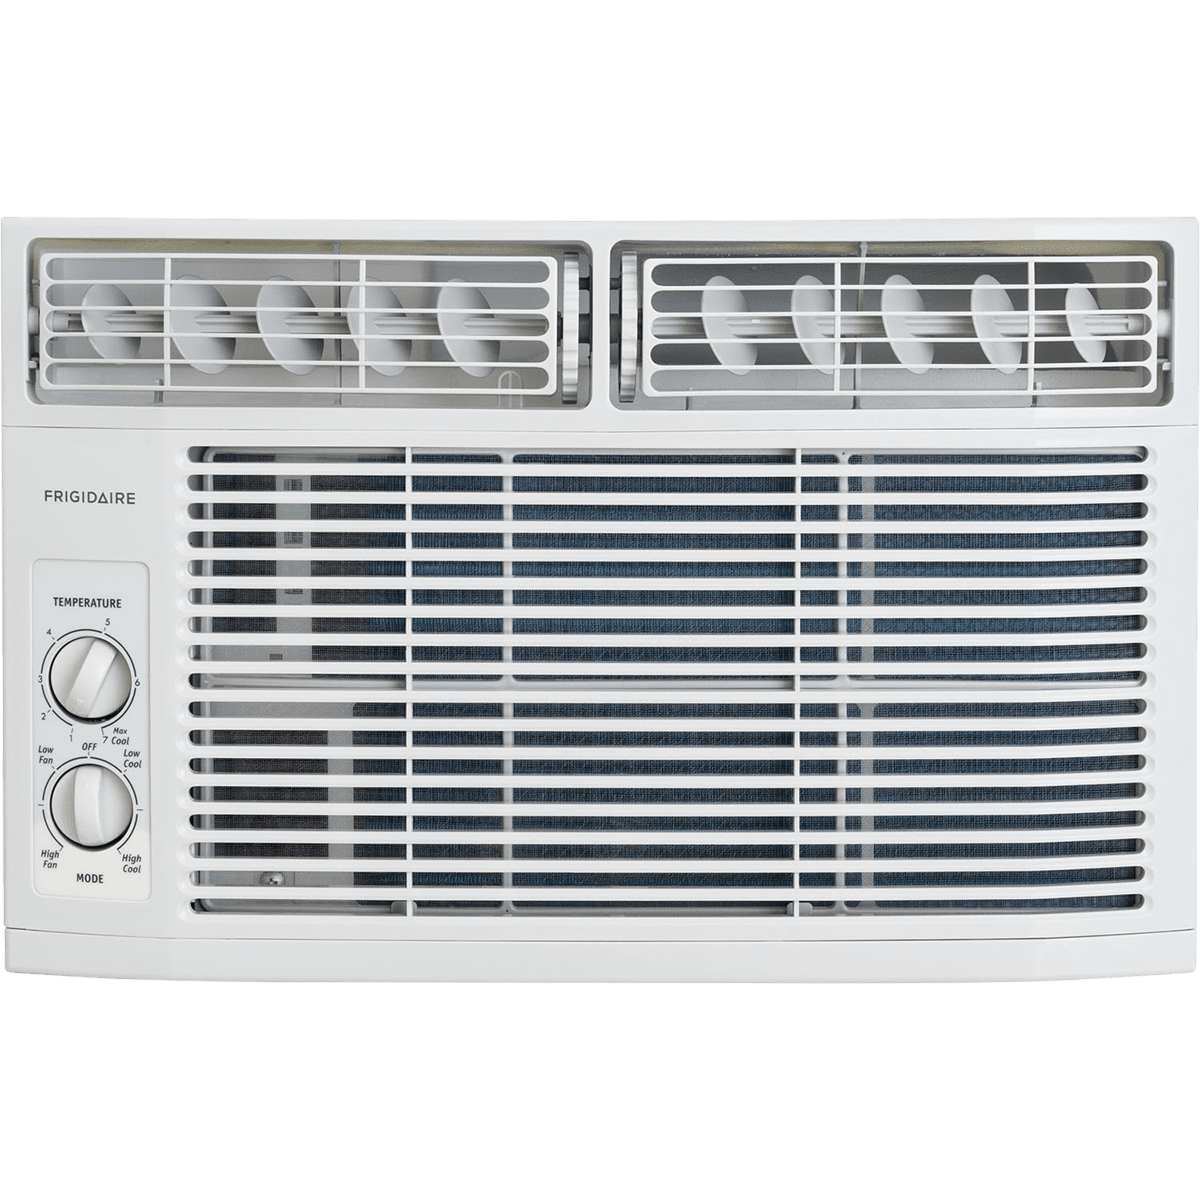 danby 6000 btu window air conditioner manual